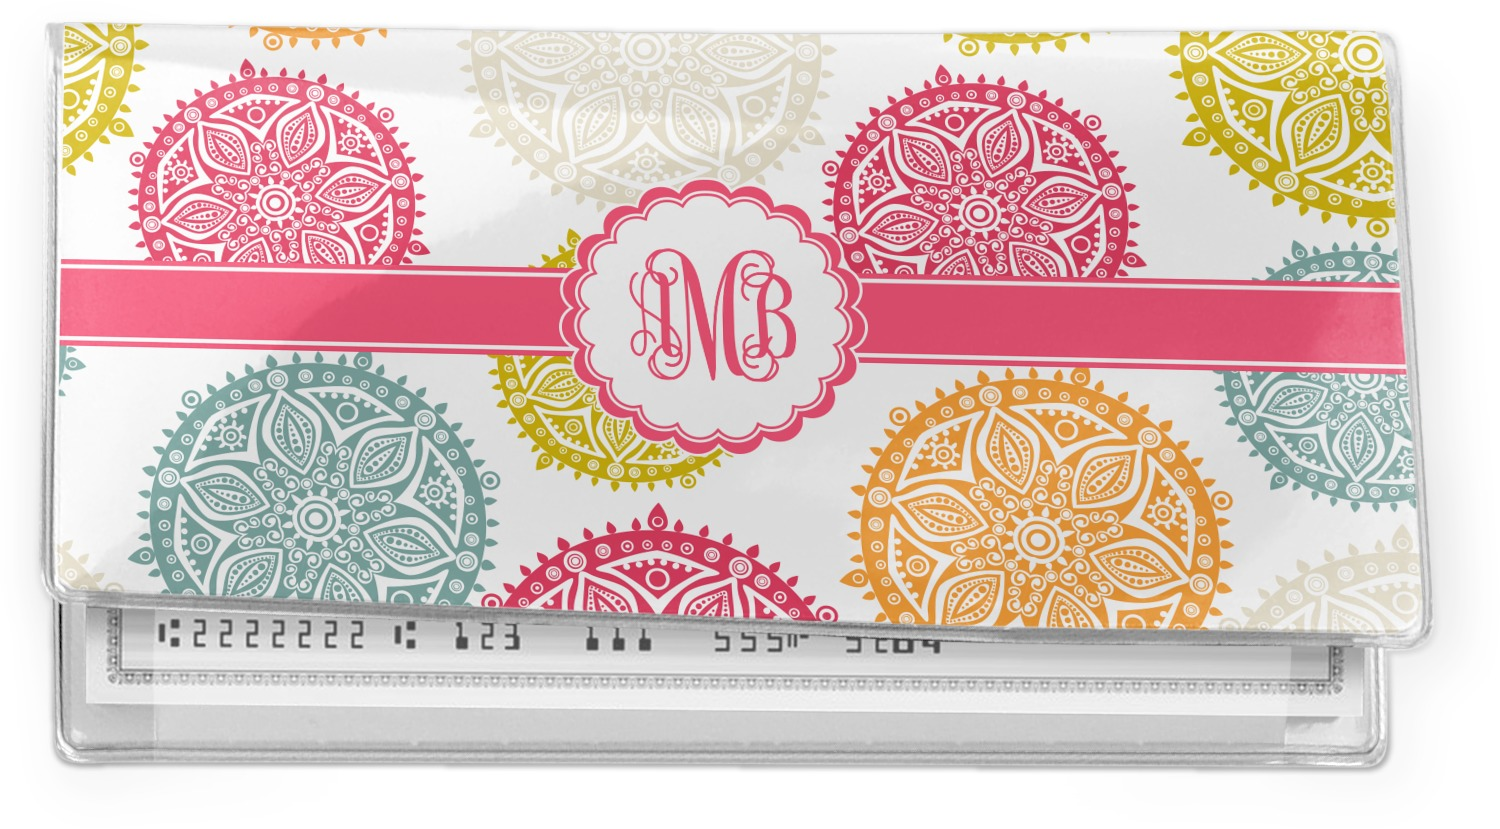 Cheque Book Cover Pattern : Doily pattern vinyl check book cover personalized